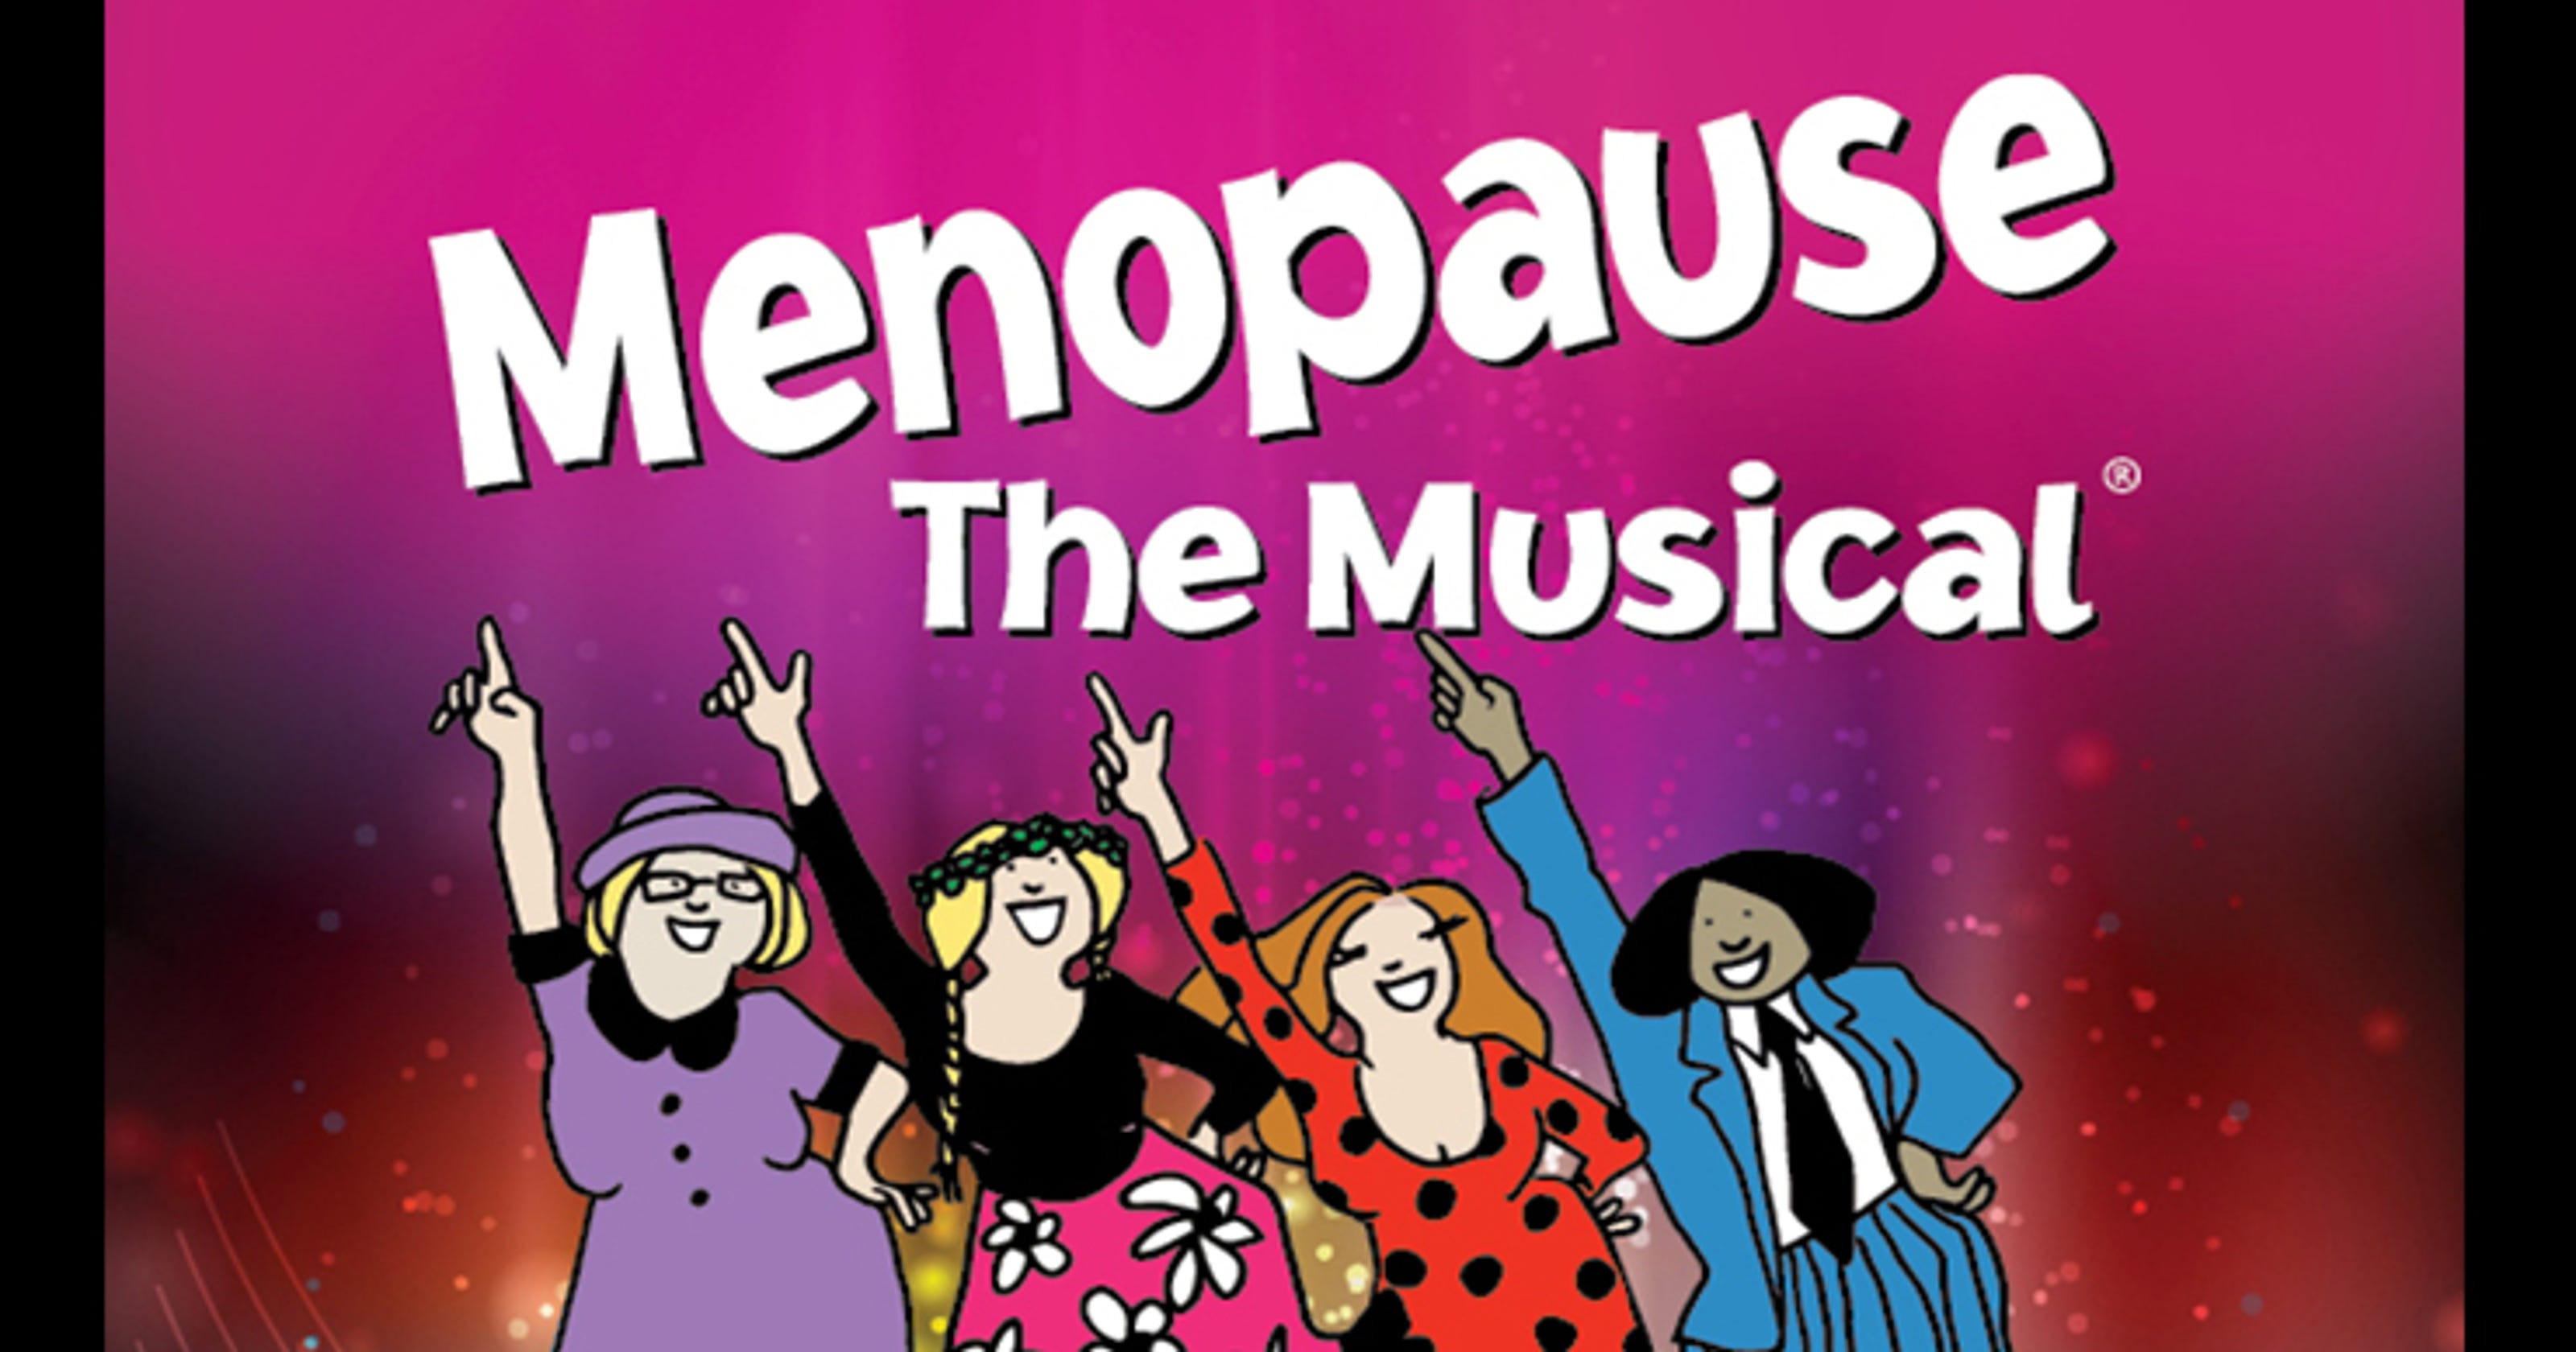 the insiders guide to the menopause